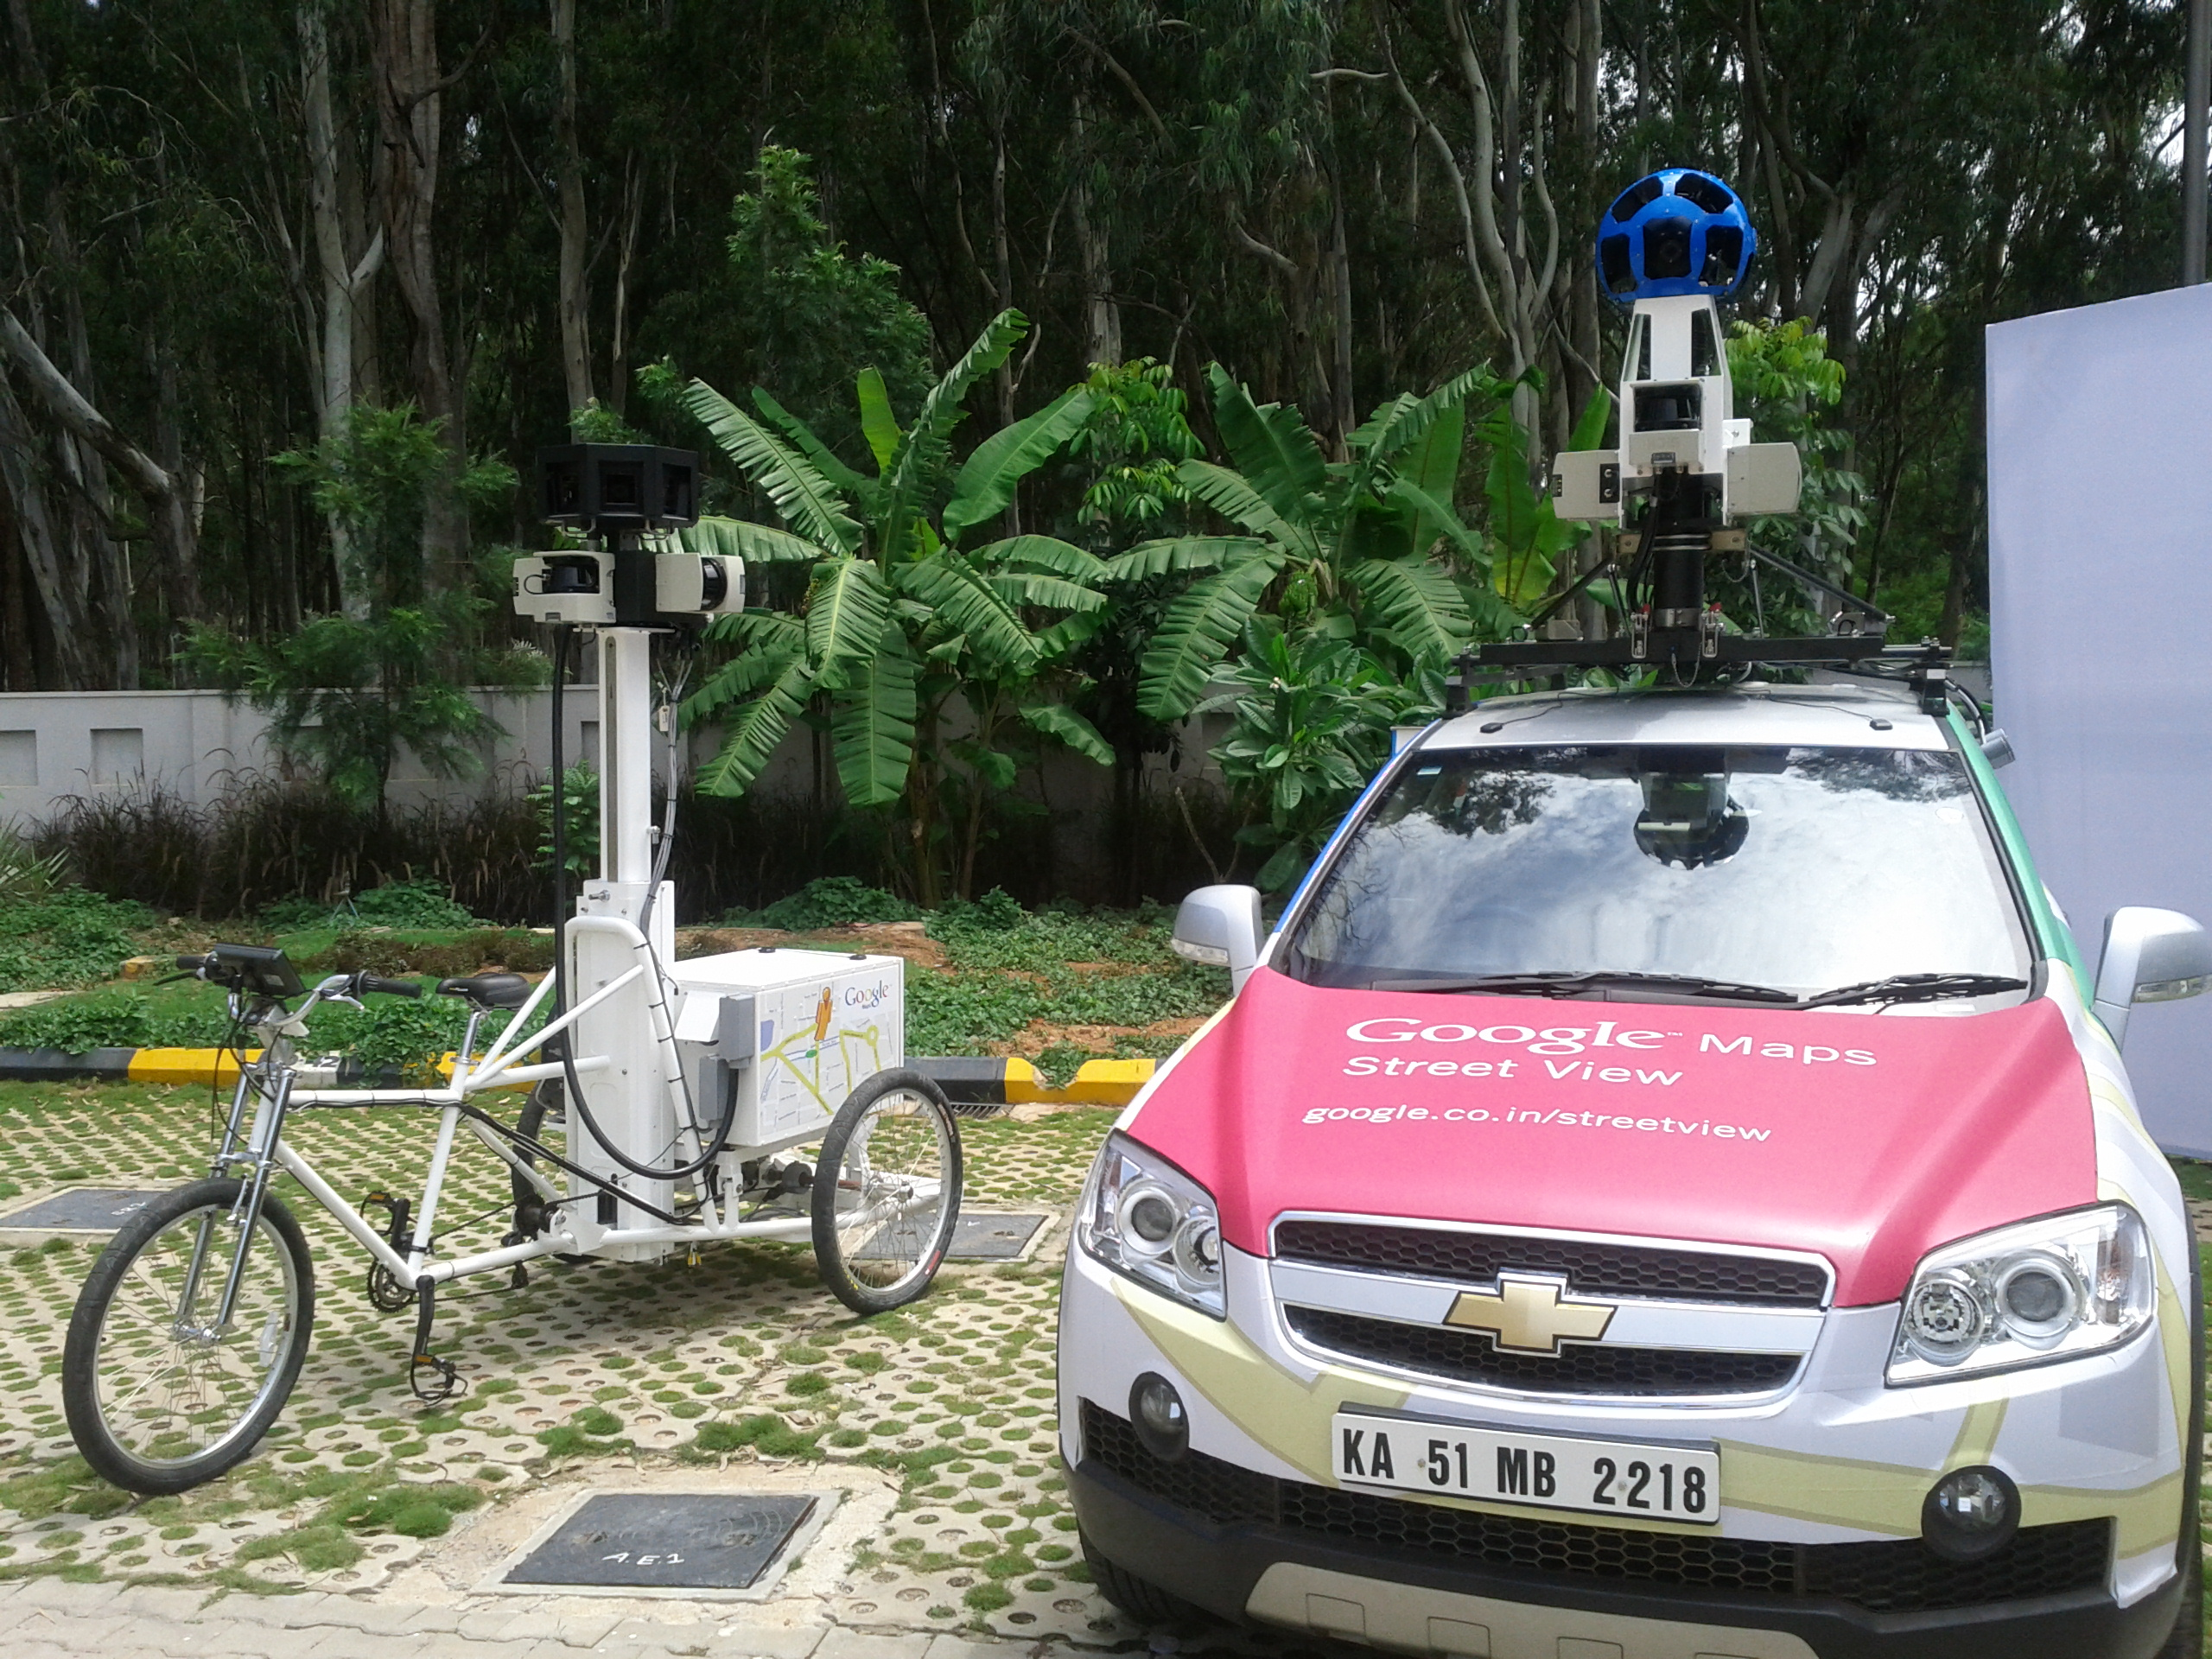 Google halts Street View capture in India over Police concerns [Updated]